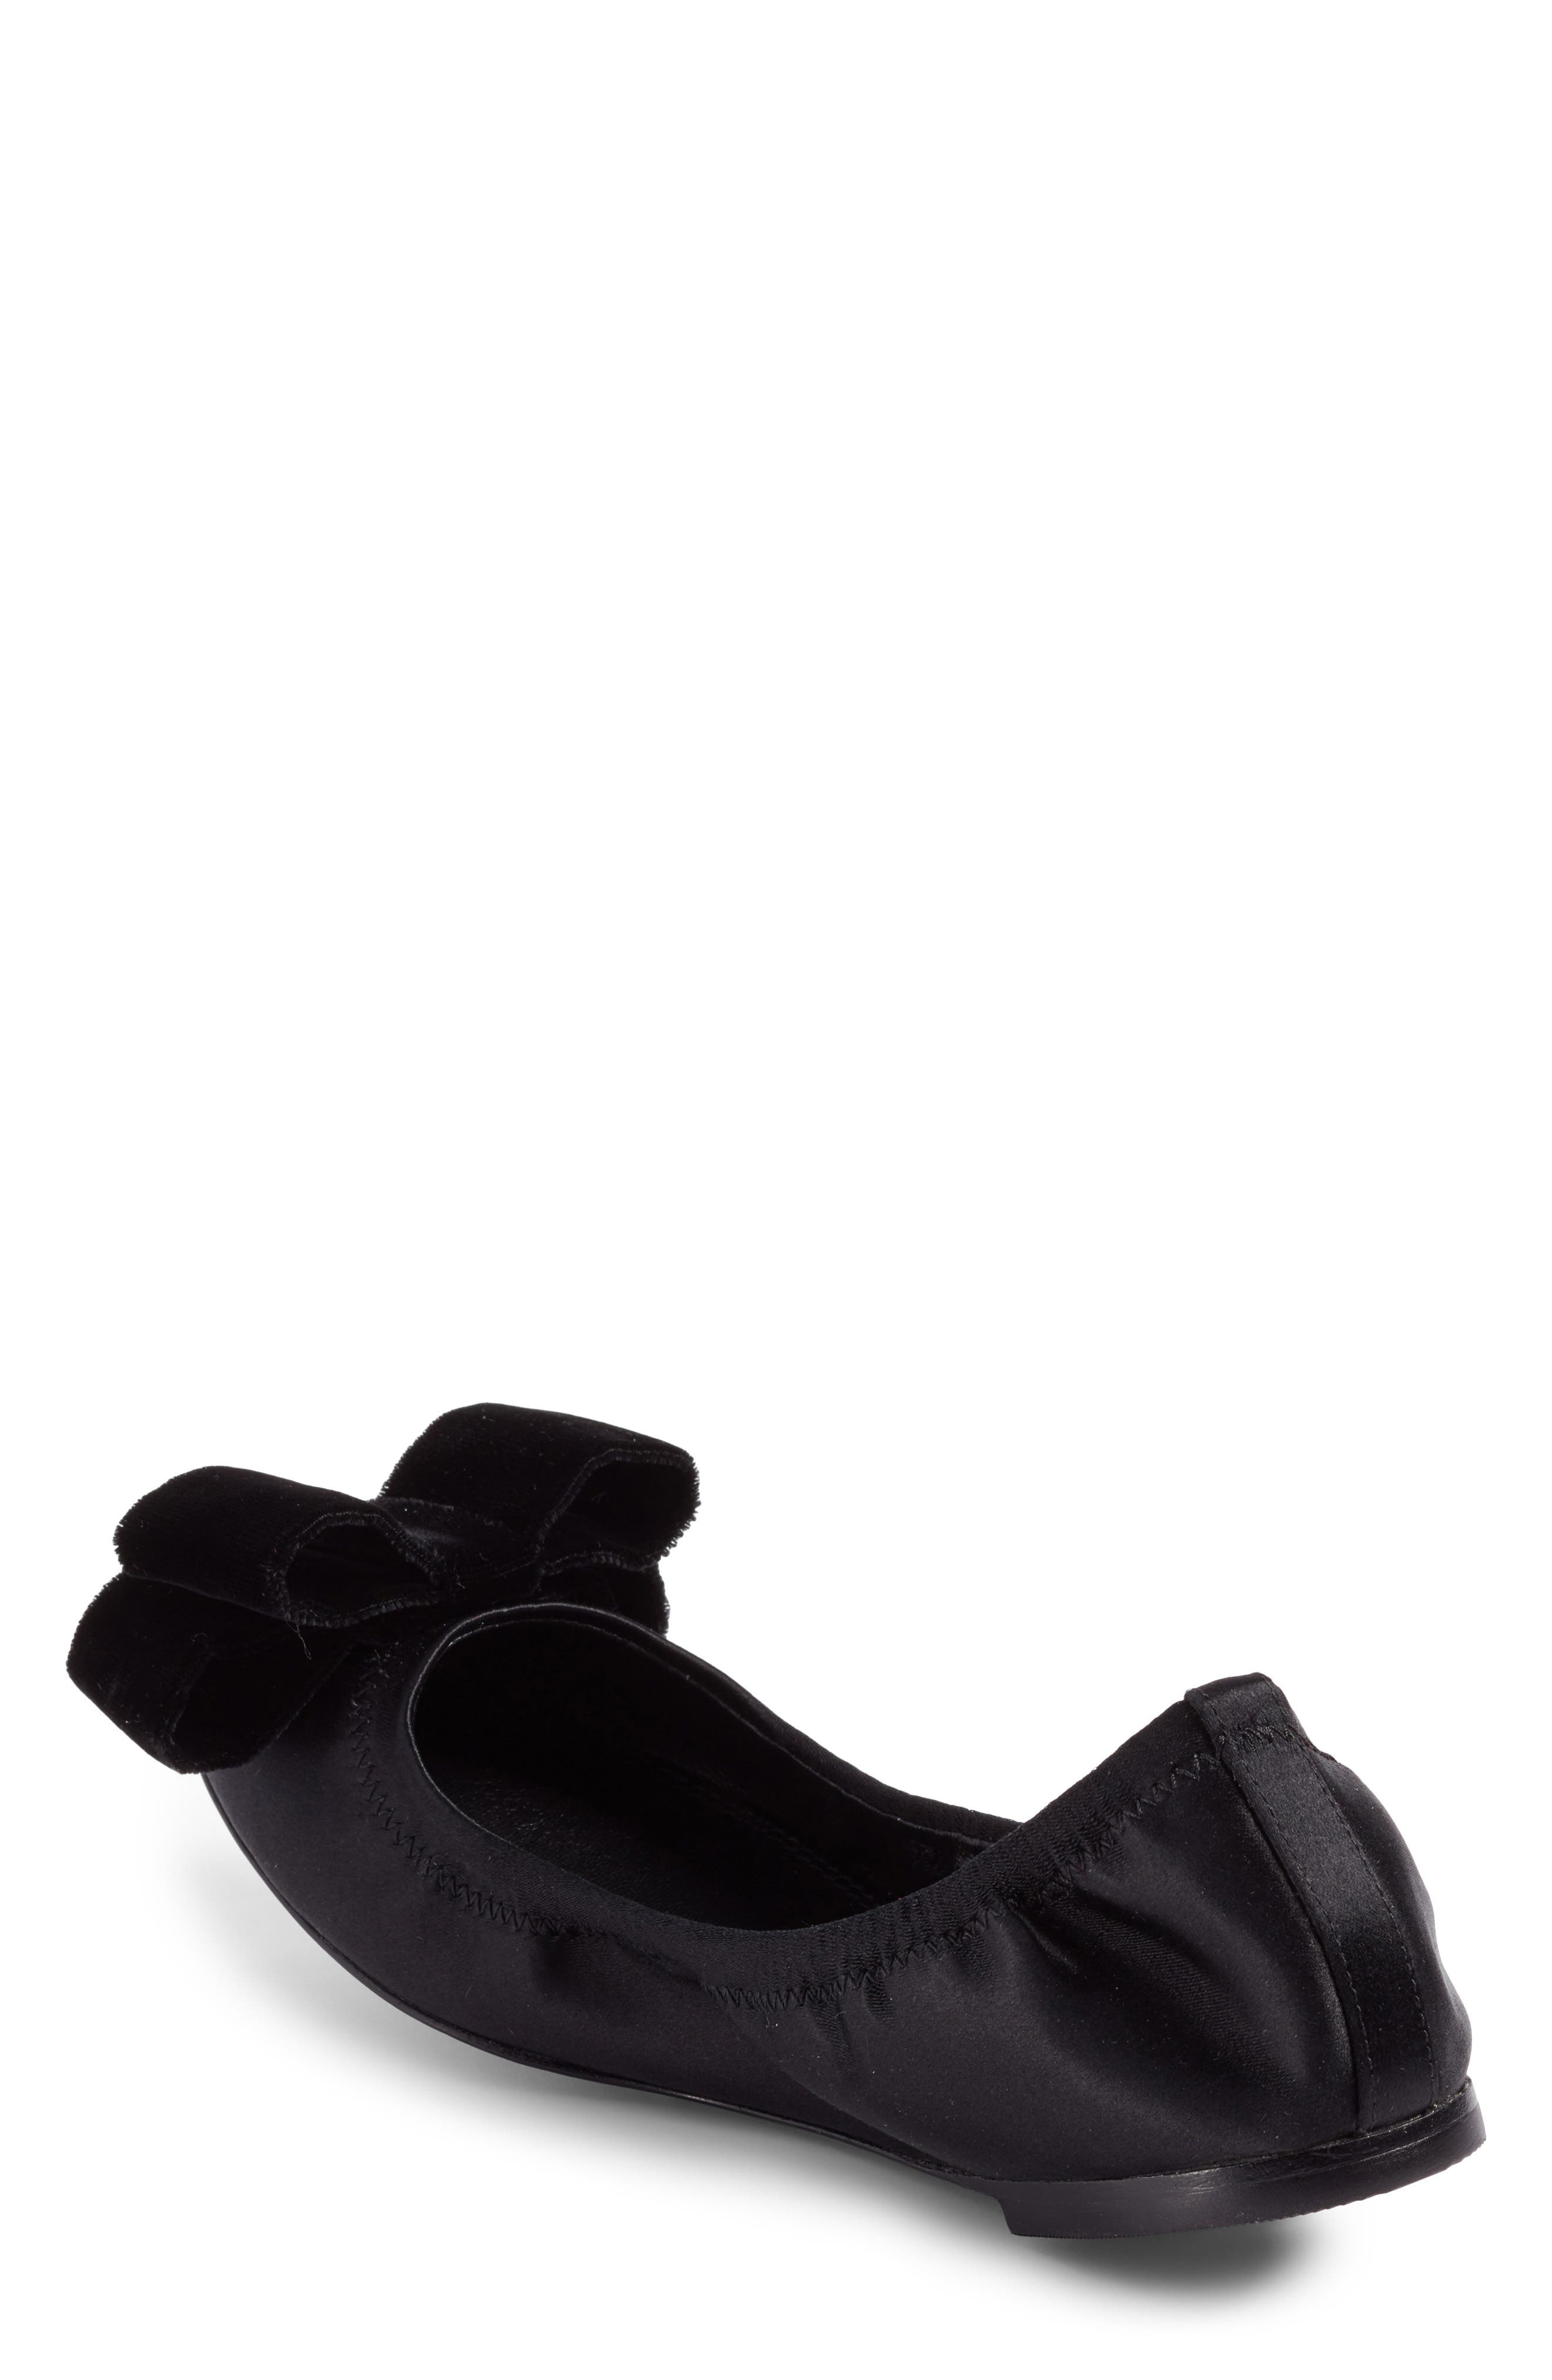 Viola Bow Ballet Flat,                             Alternate thumbnail 2, color,                             009